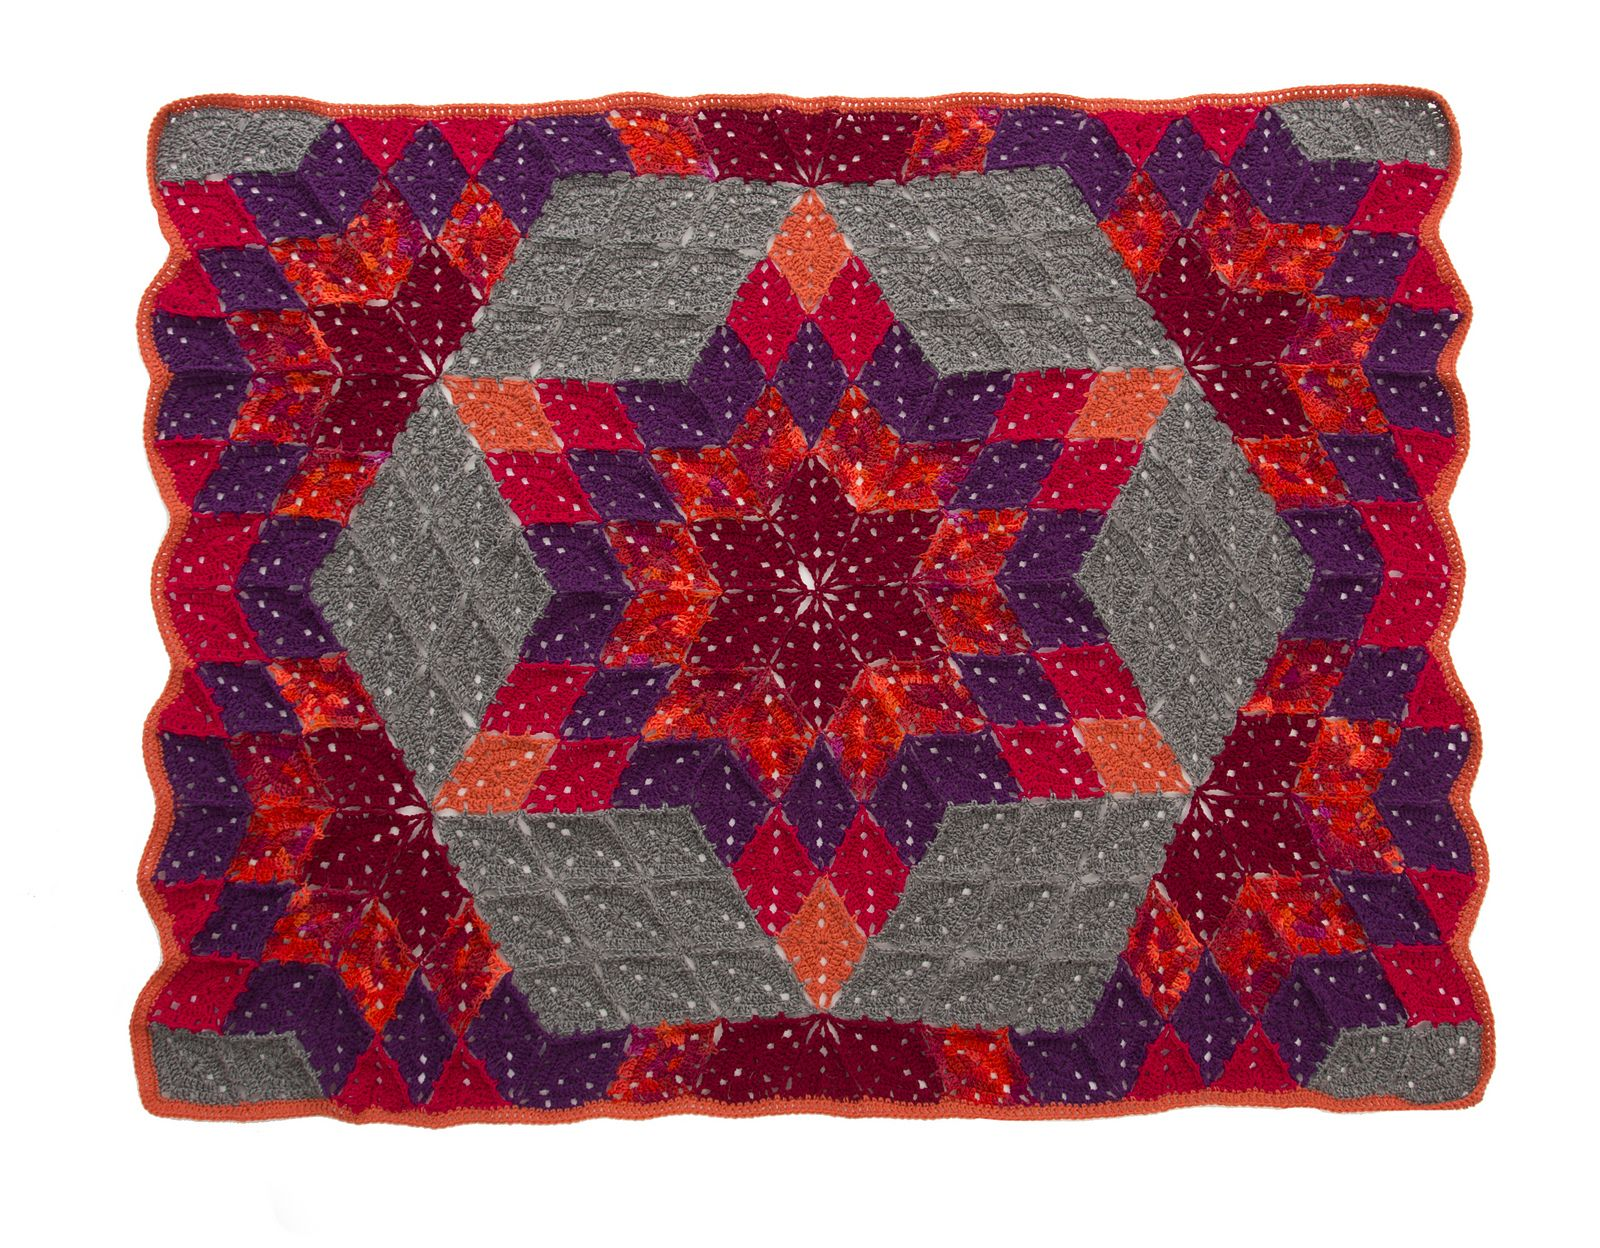 Ravelry desert star marilyn coleman ve mary jane protus ravelry desert star prairie star throw free pattern by marilyn coleman and mary jane protus bankloansurffo Image collections